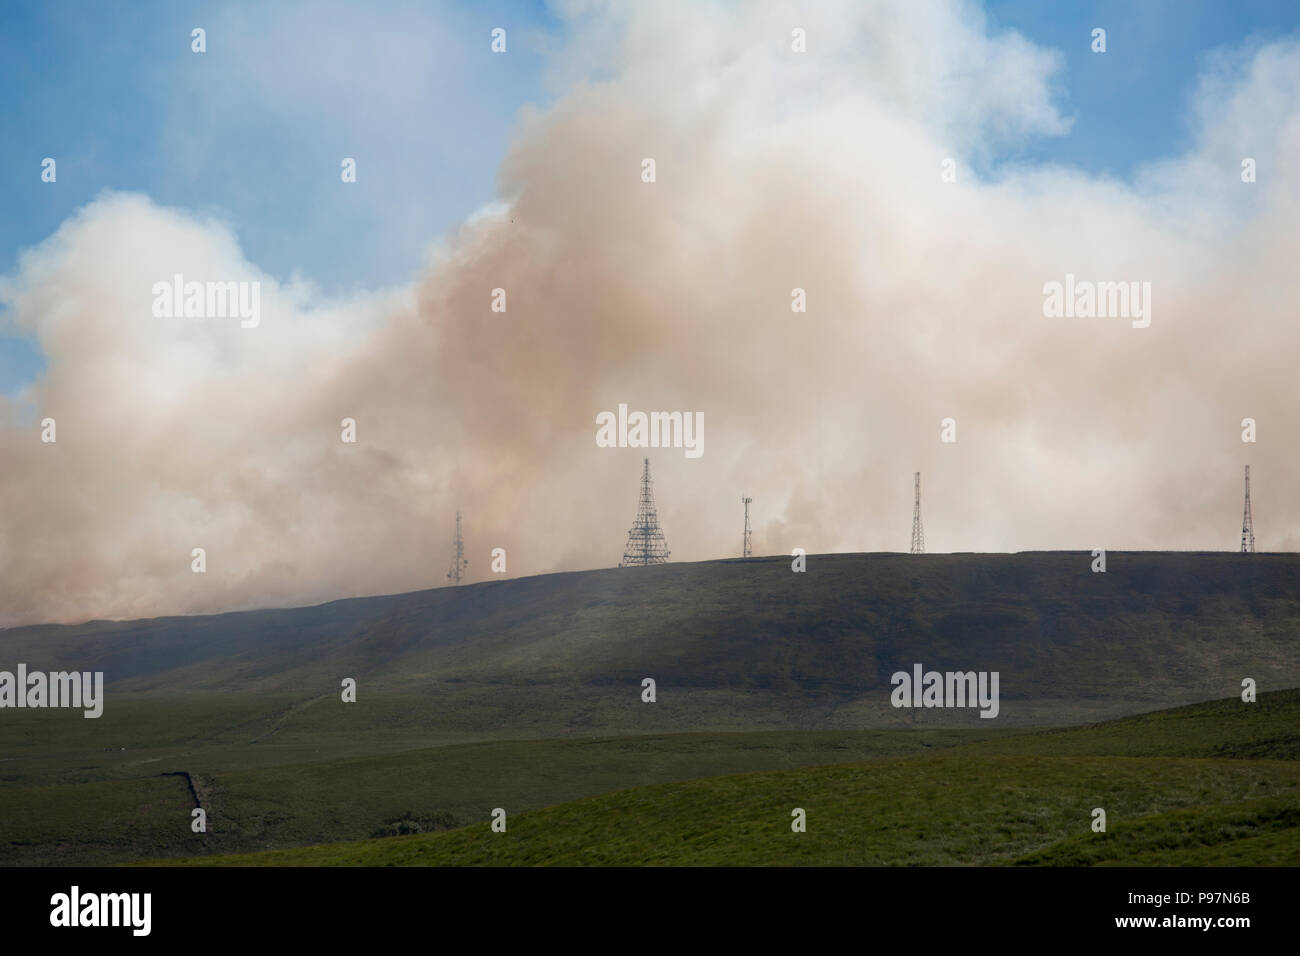 Winter Hill Lancashire on fire with the masts wreathed in smoke. 20th June, 2018. - Stock Image